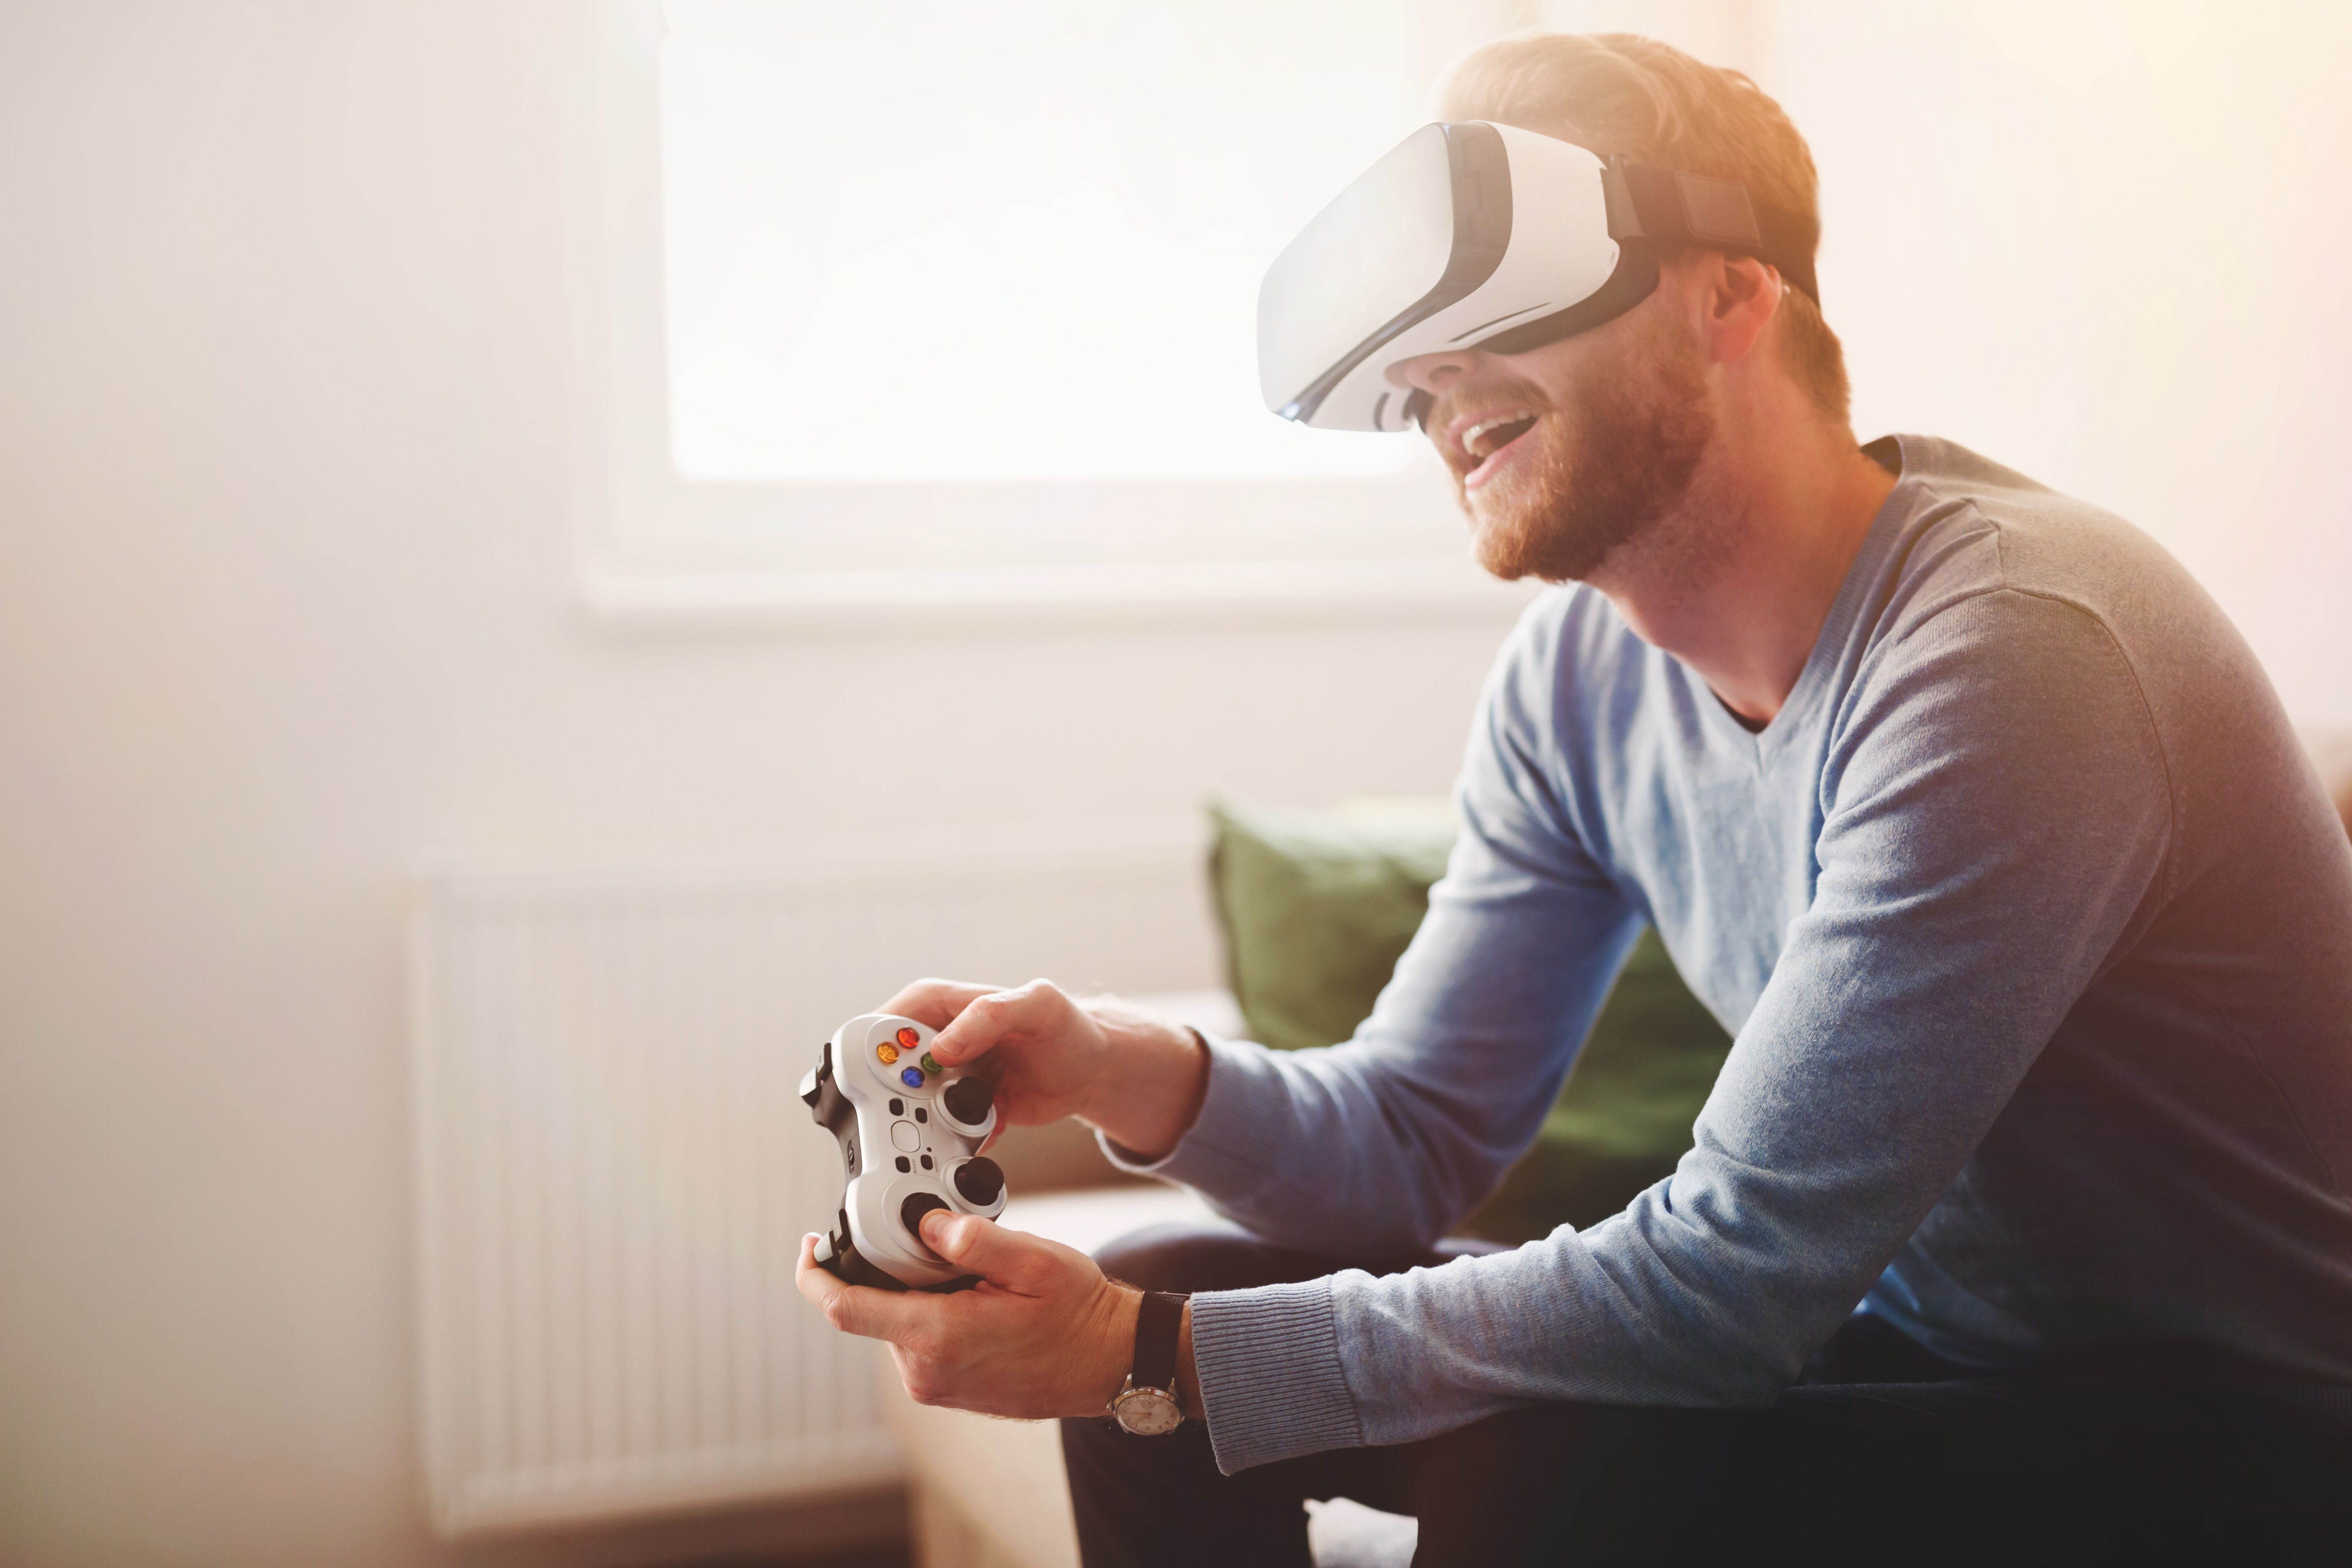 Researchers Claim Video Games Could Be A Viable Treatment For